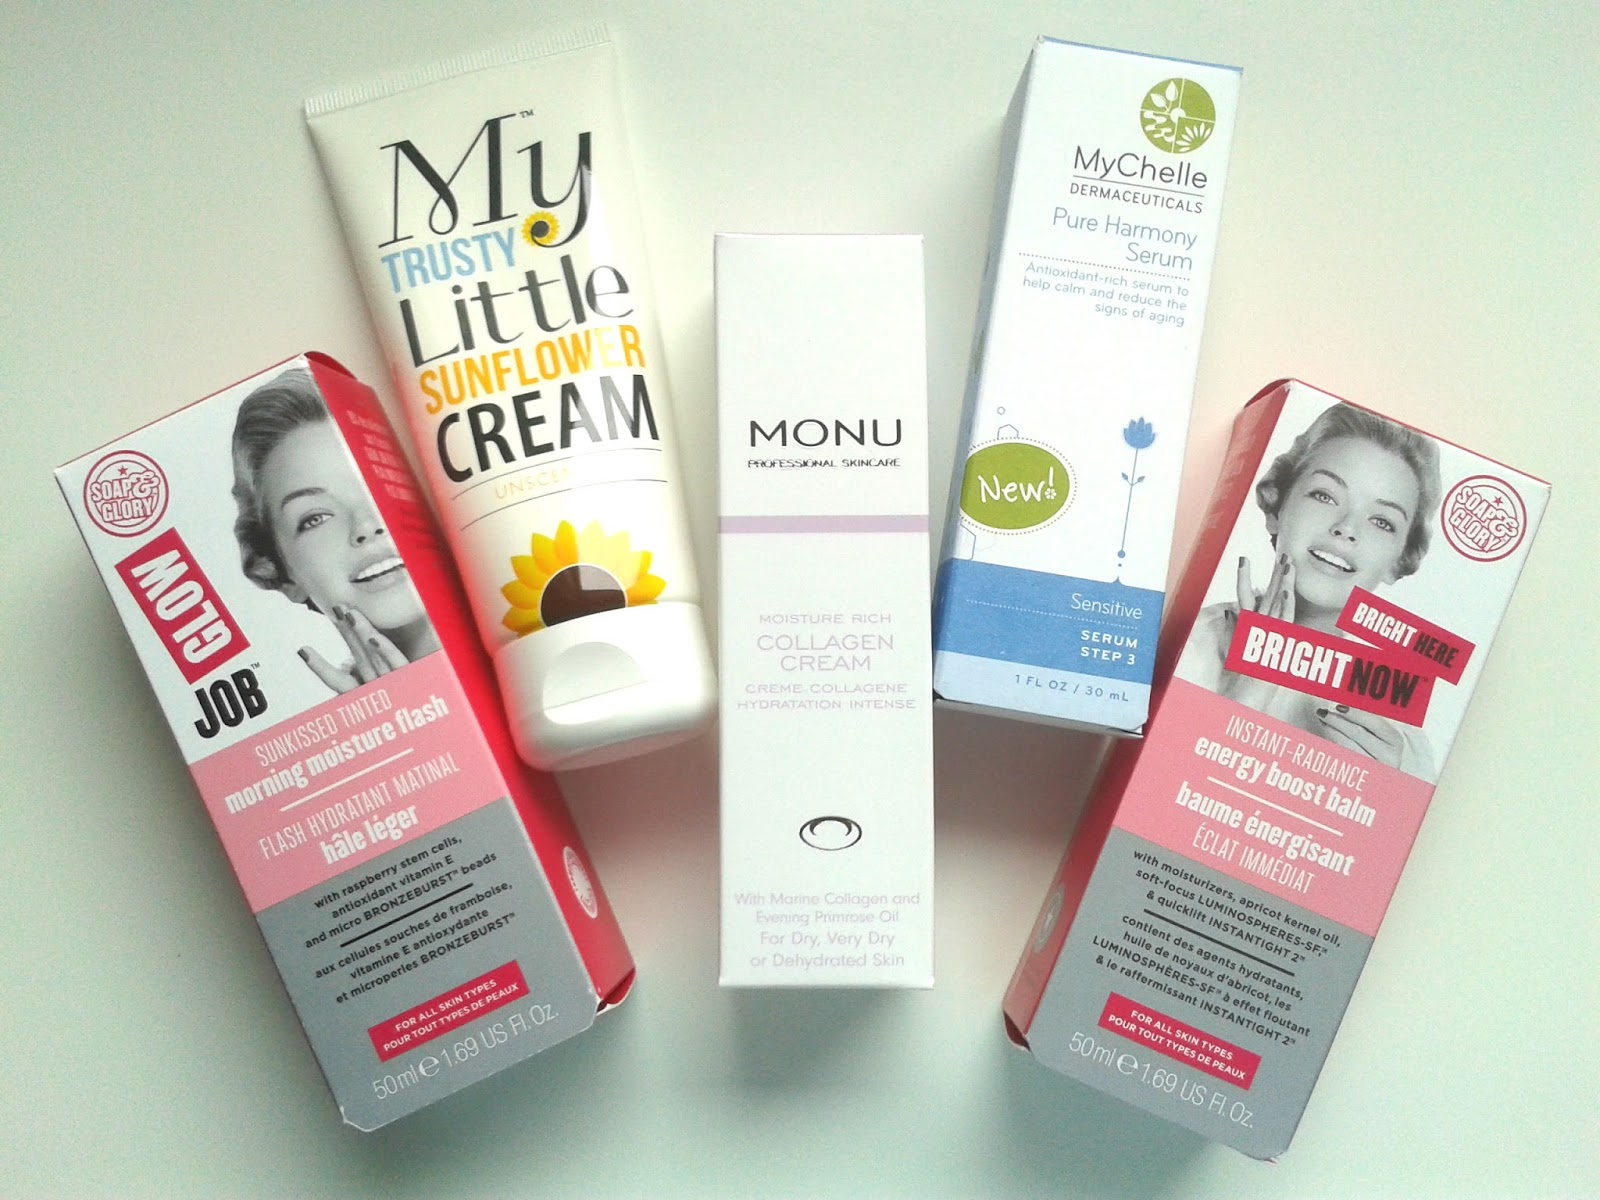 Soap & Glory Glow Job Bright Here Bright Now Monu Collagen Cream My Trusty Little Sunflower Cream Mychelle Pure Harmony Serum Skincare Review Recent Discoveries